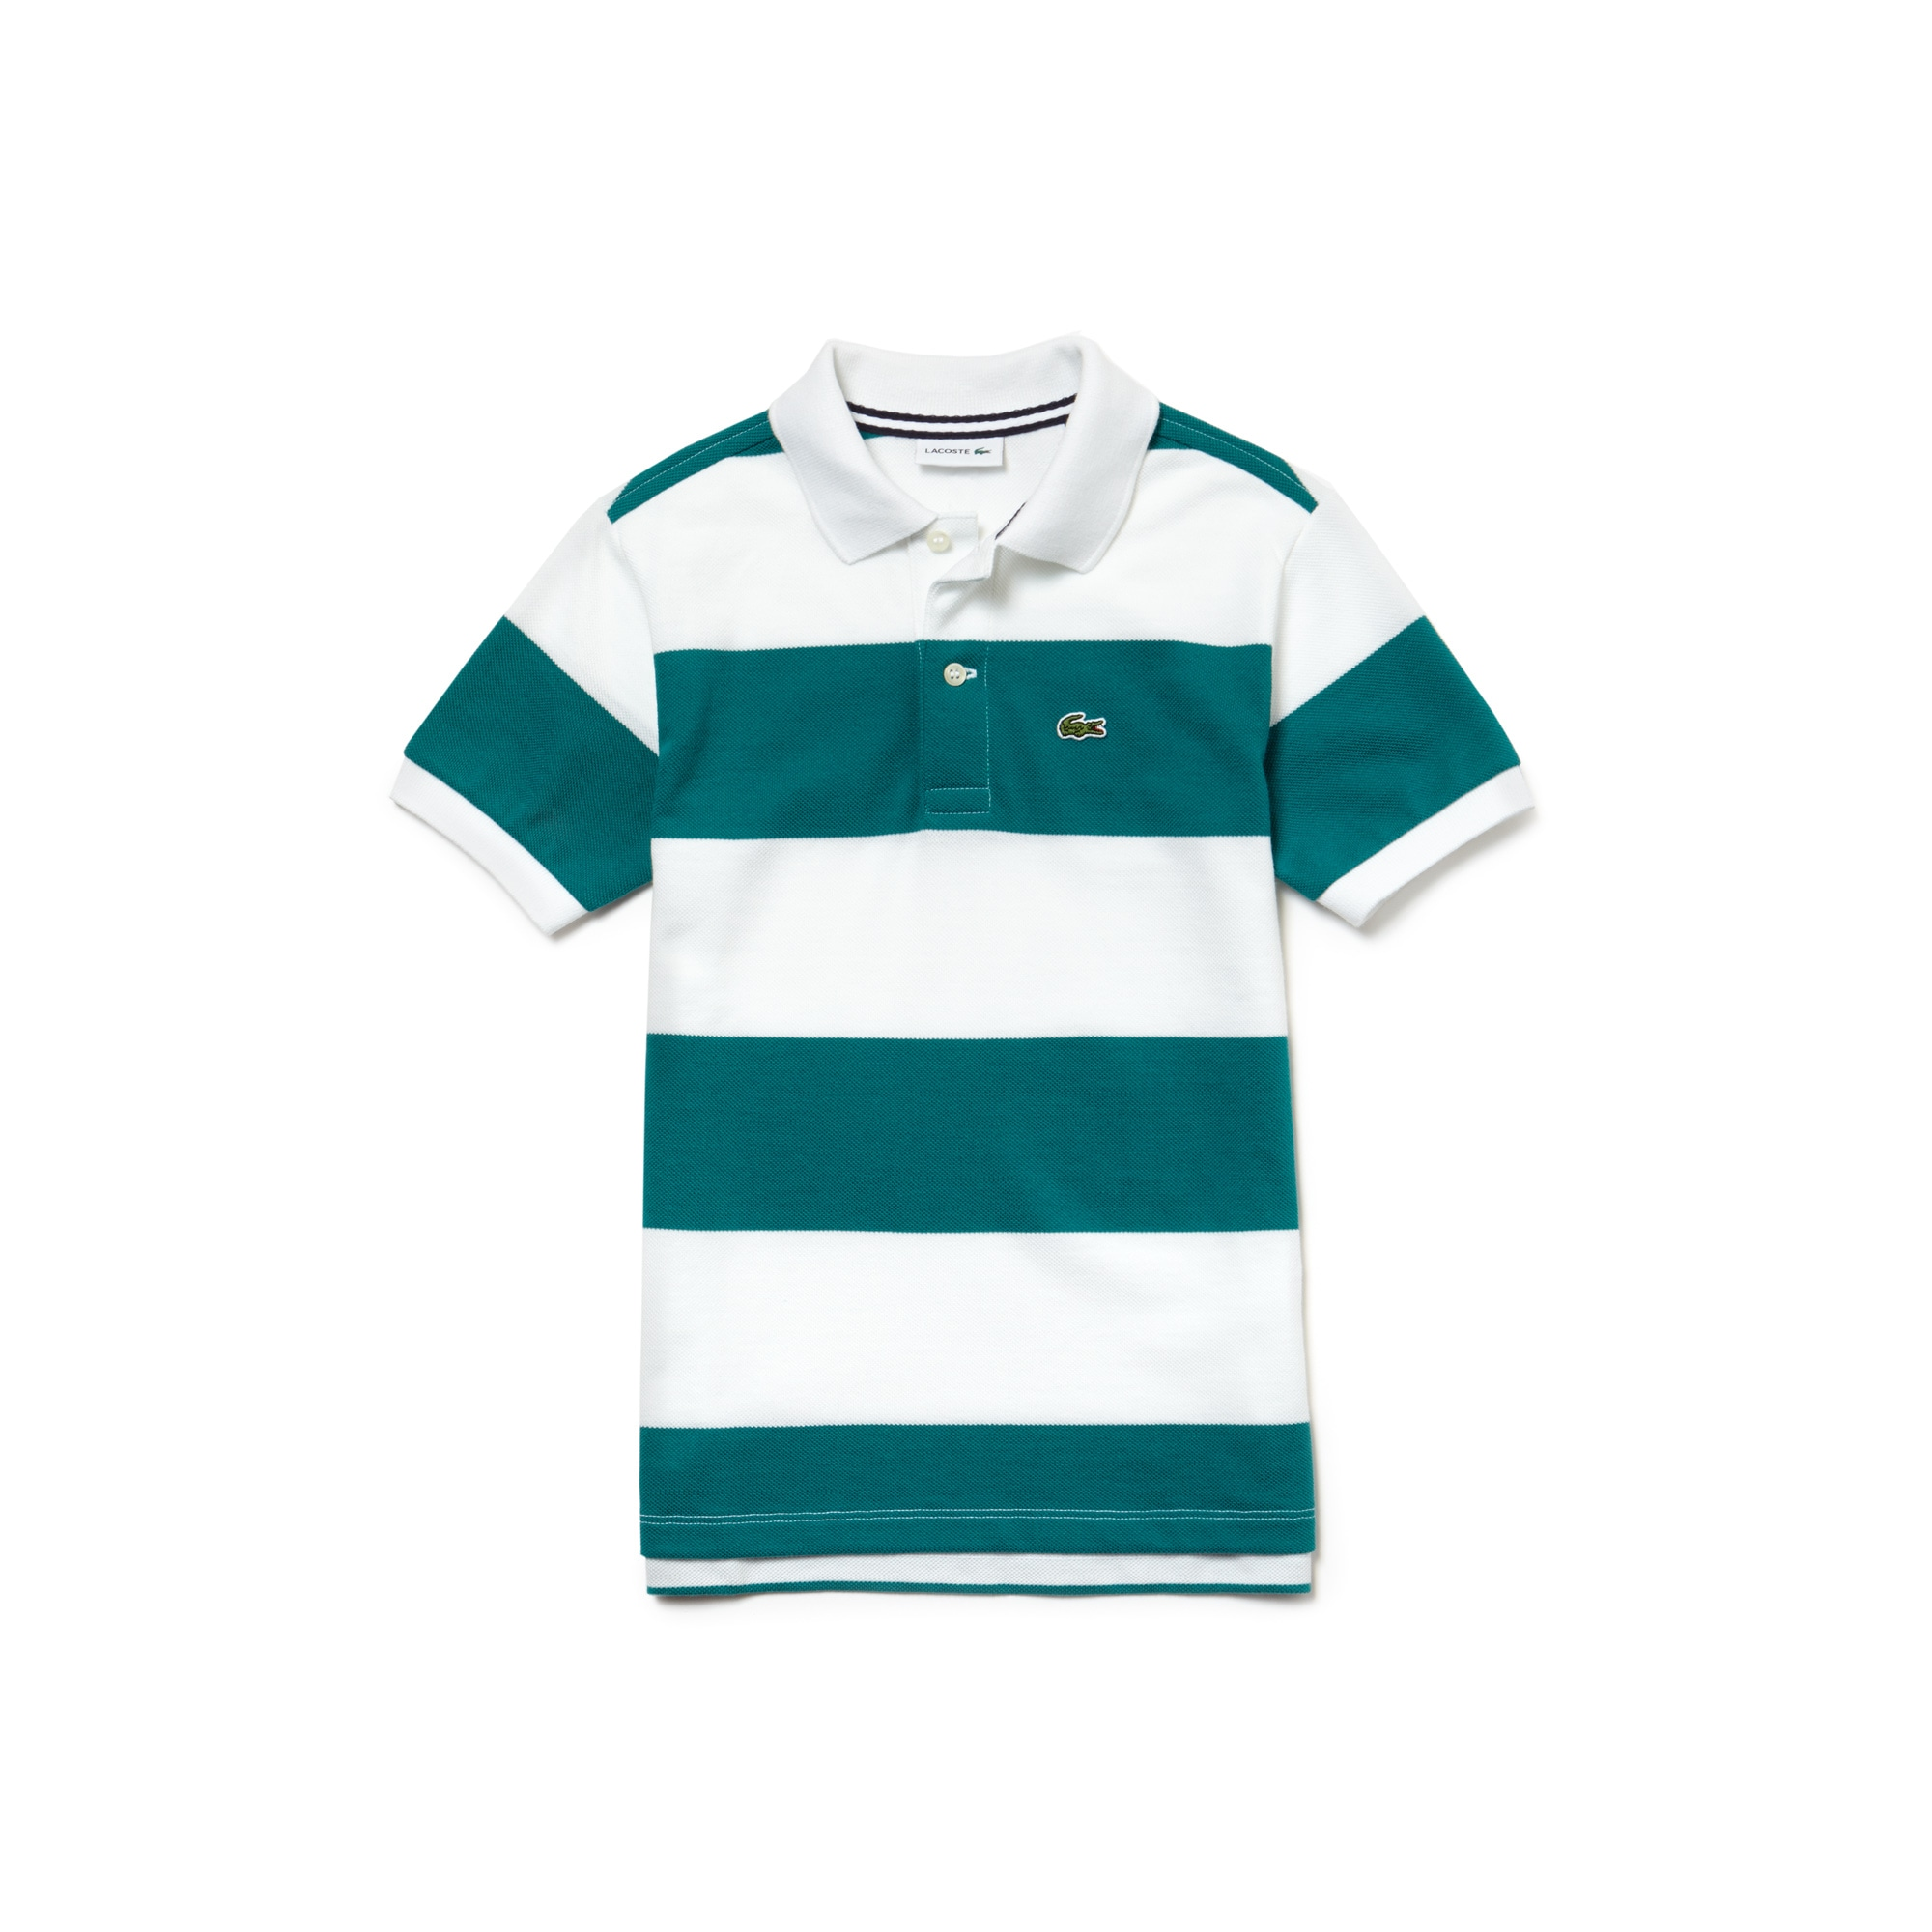 Boys' Lacoste Striped Cotton Petit Piqué Polo Shirt